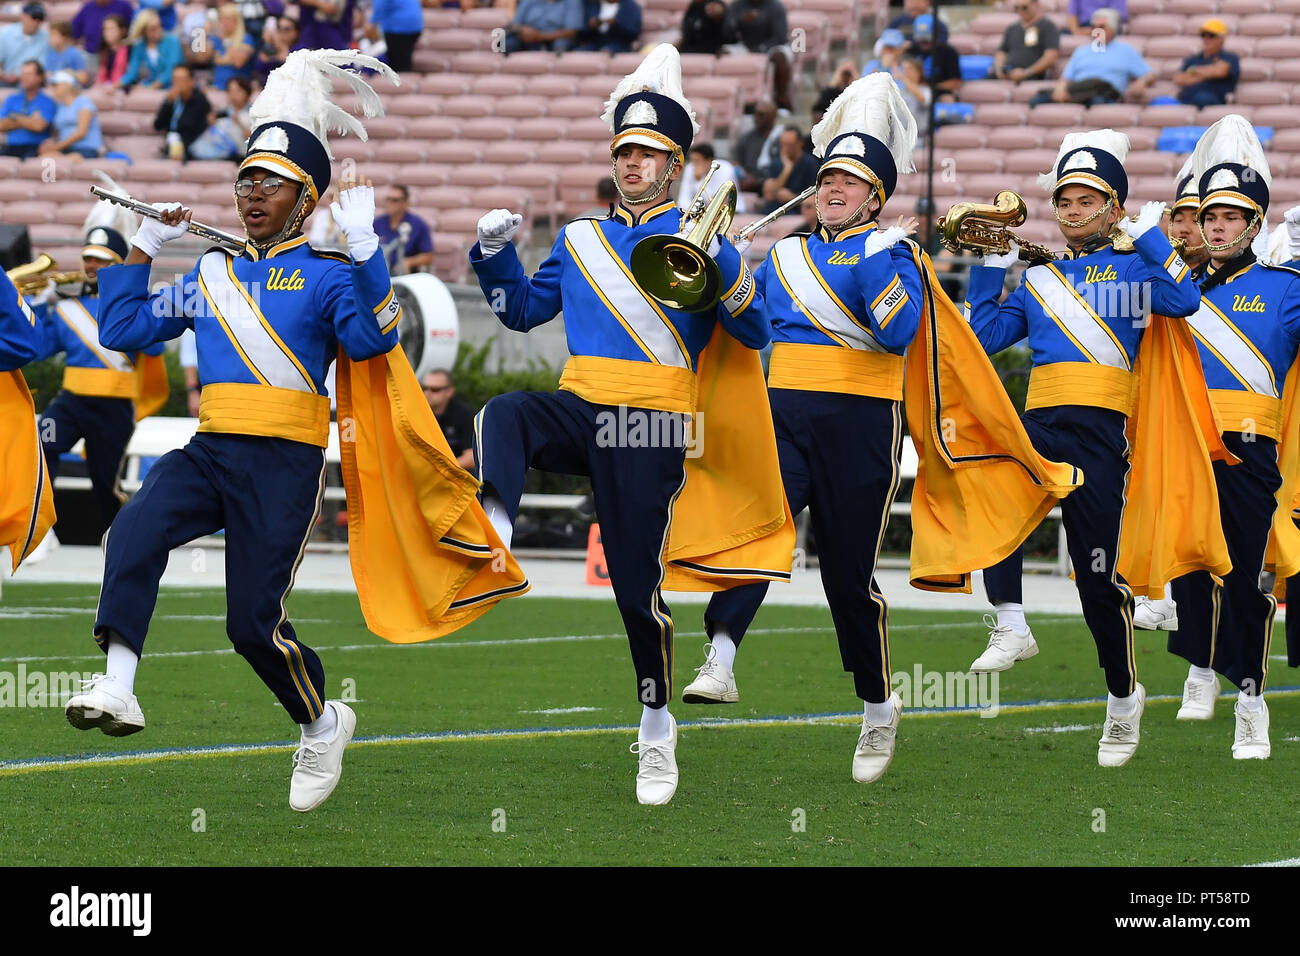 Ucla Bruins Marching Band Stock Photos & Ucla Bruins